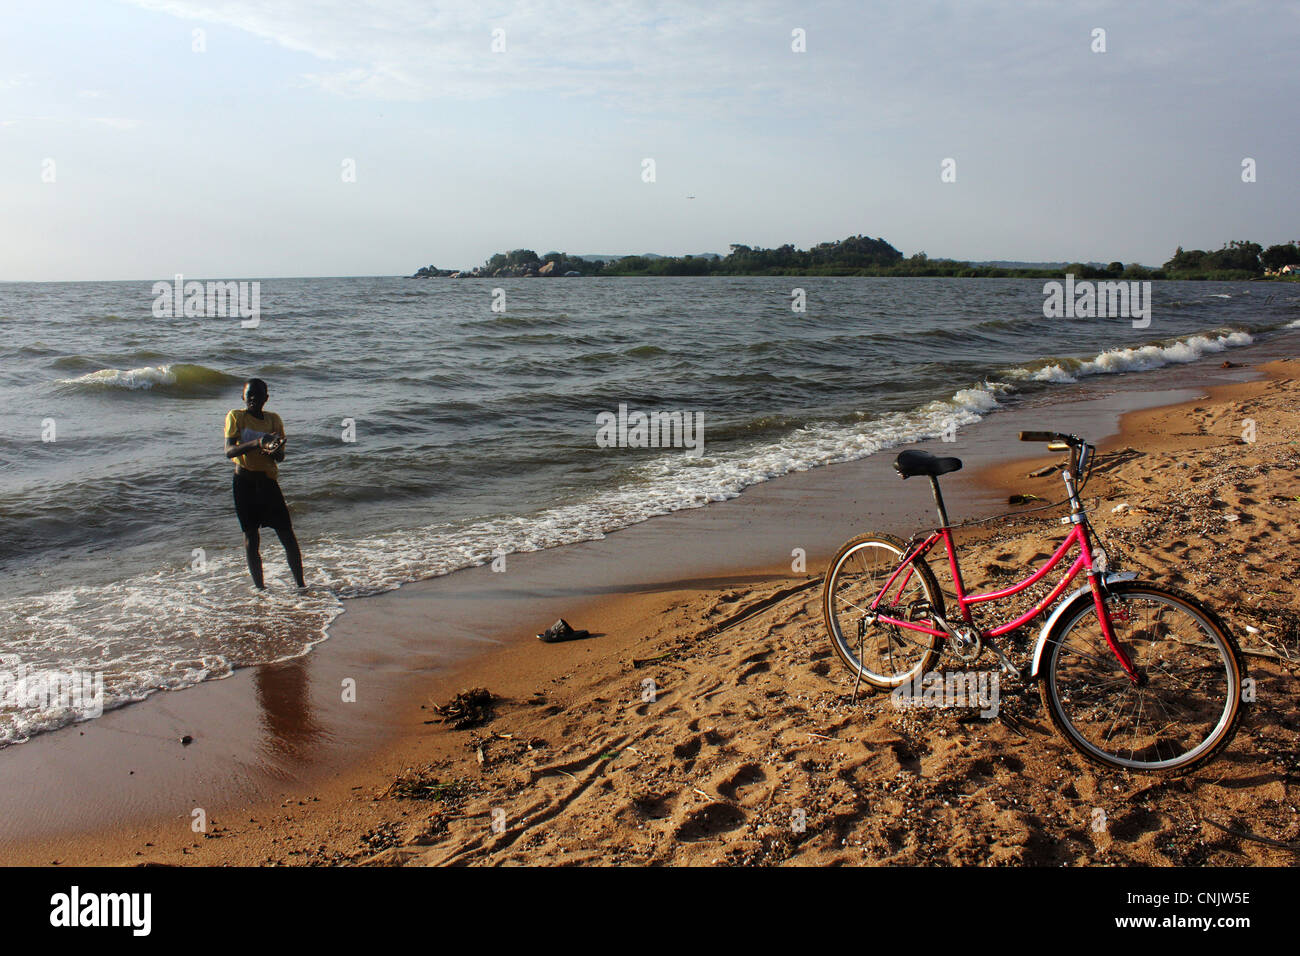 Children bathing and playing at the shore of Victoria lake, Musoma, northern Tanzánie - Stock Image